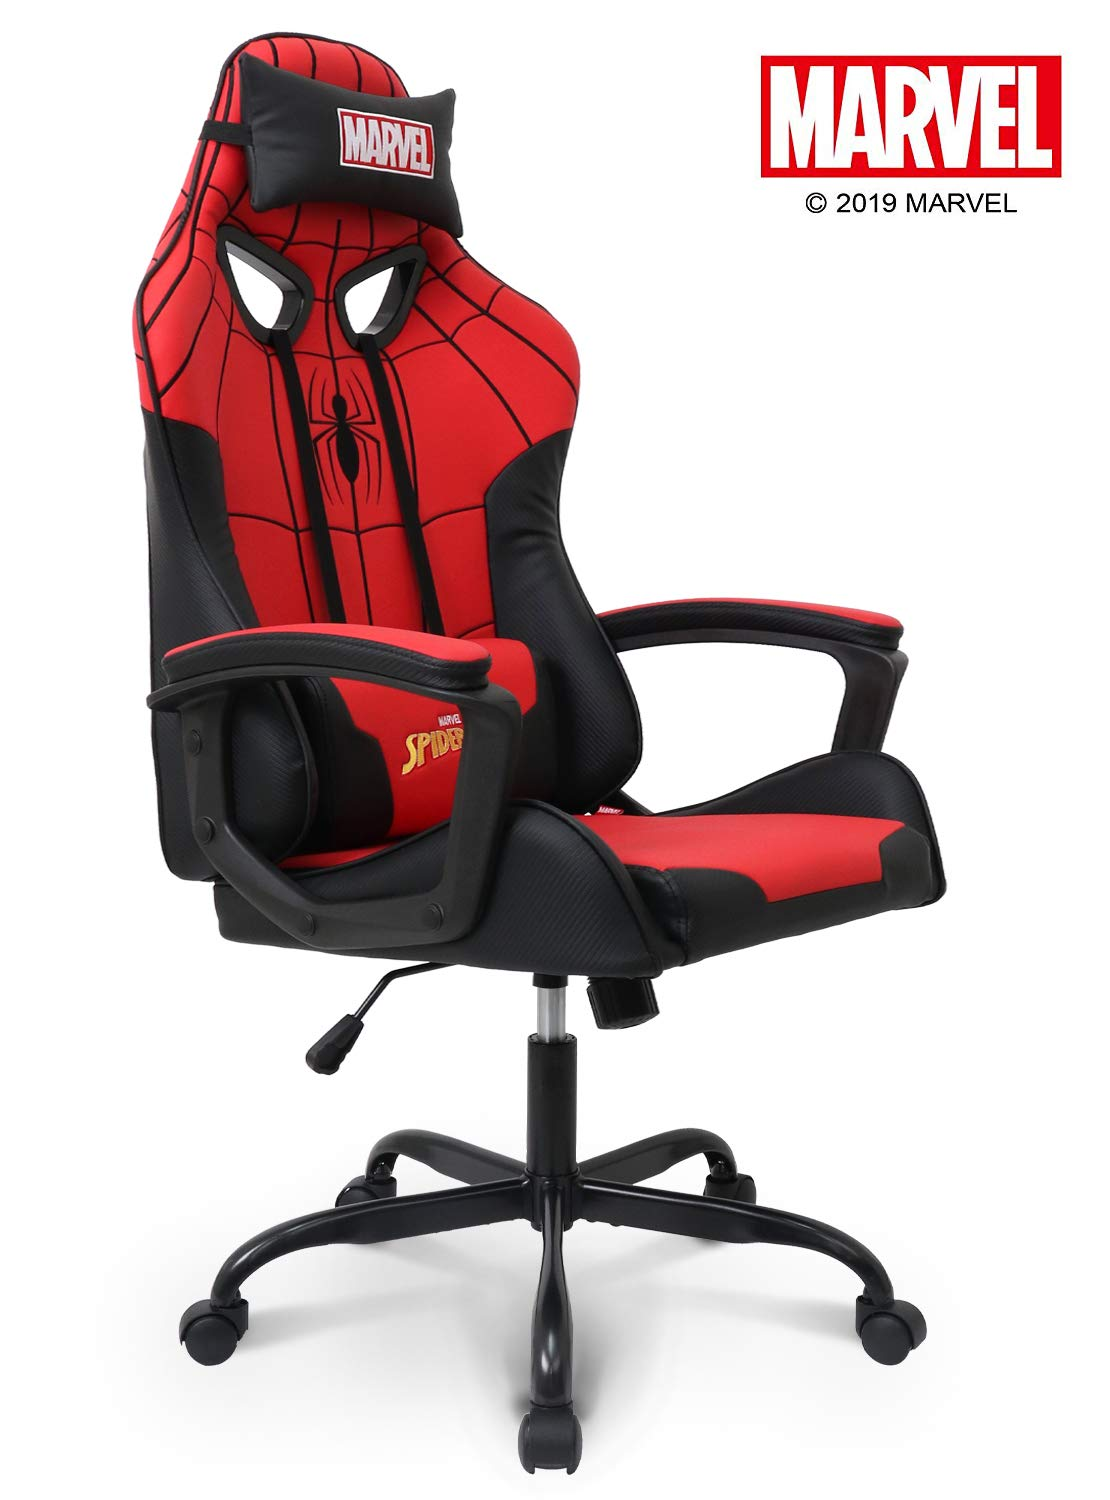 Marvel Spider-Man Gaming Chair High End Ergonomic Neck Lumbar Support Armrests Reclining and Tilting Computer Desk Office Executive Leather Racing Chair by Neo Chair